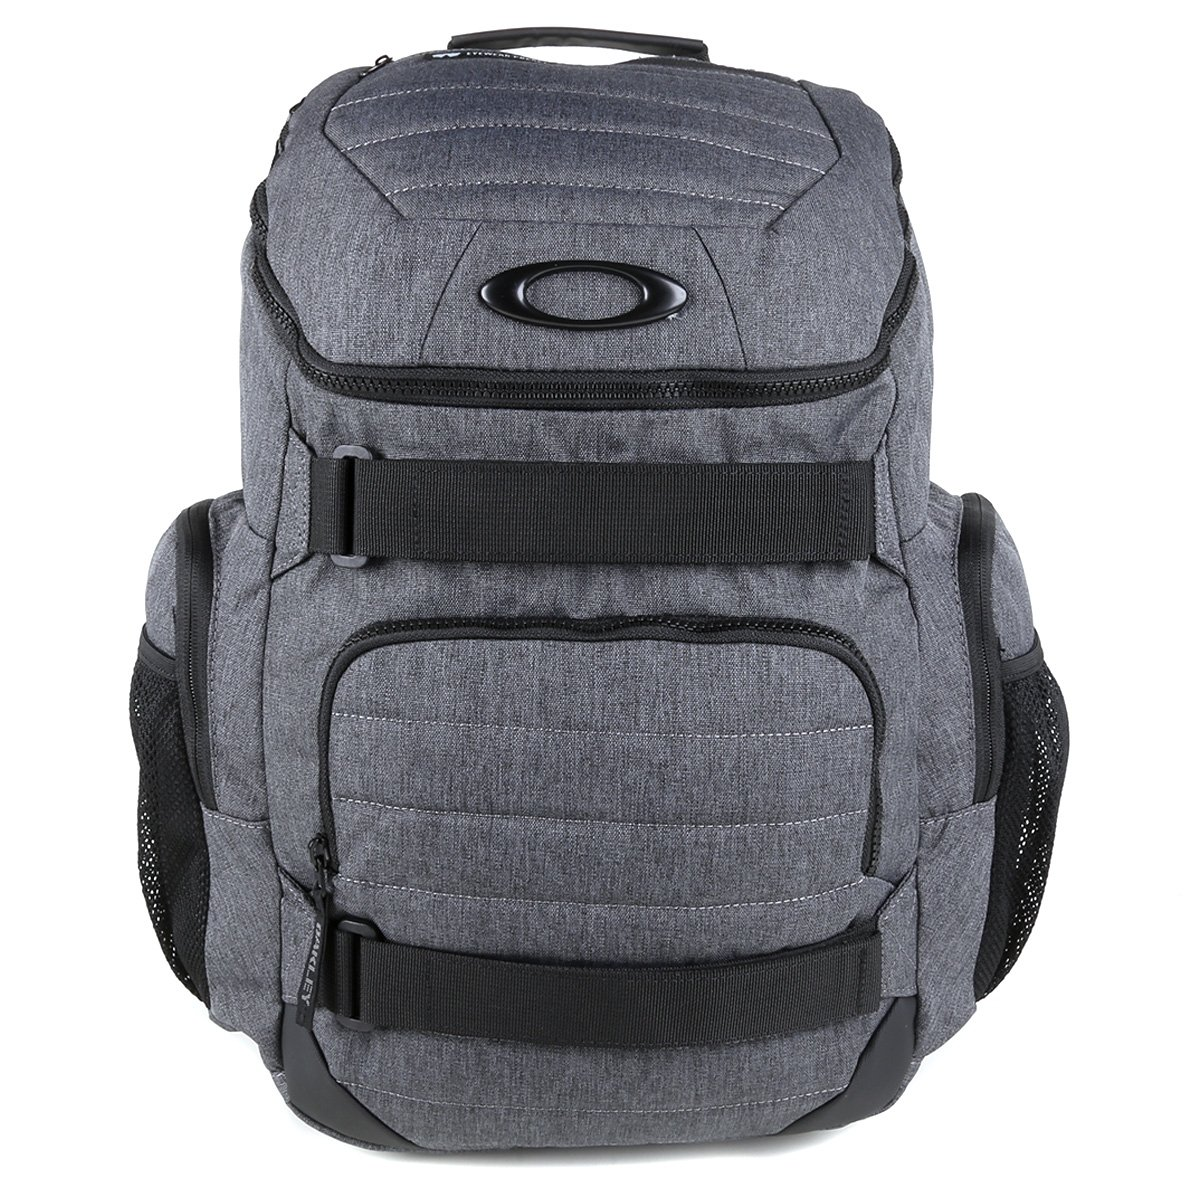 Mochila Oakley Mod Enduro 2.0 Big Backpack